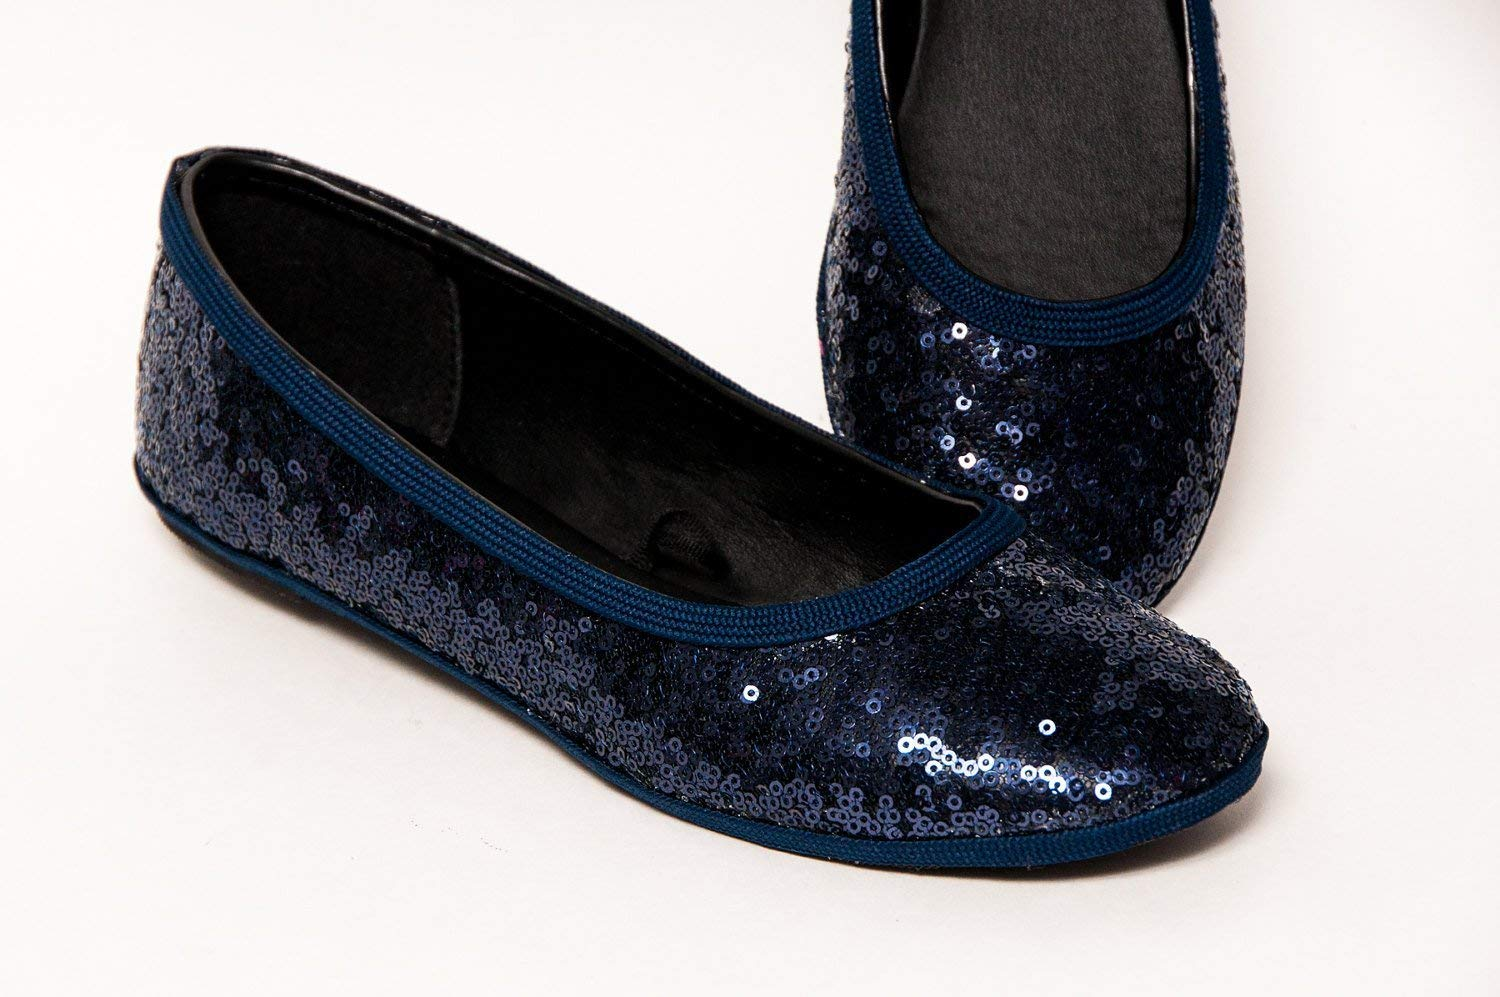 78ef3e1649c90 Get Quotations · Starlight Sequin Navy Blue Ballet Flats Slippers Shoes